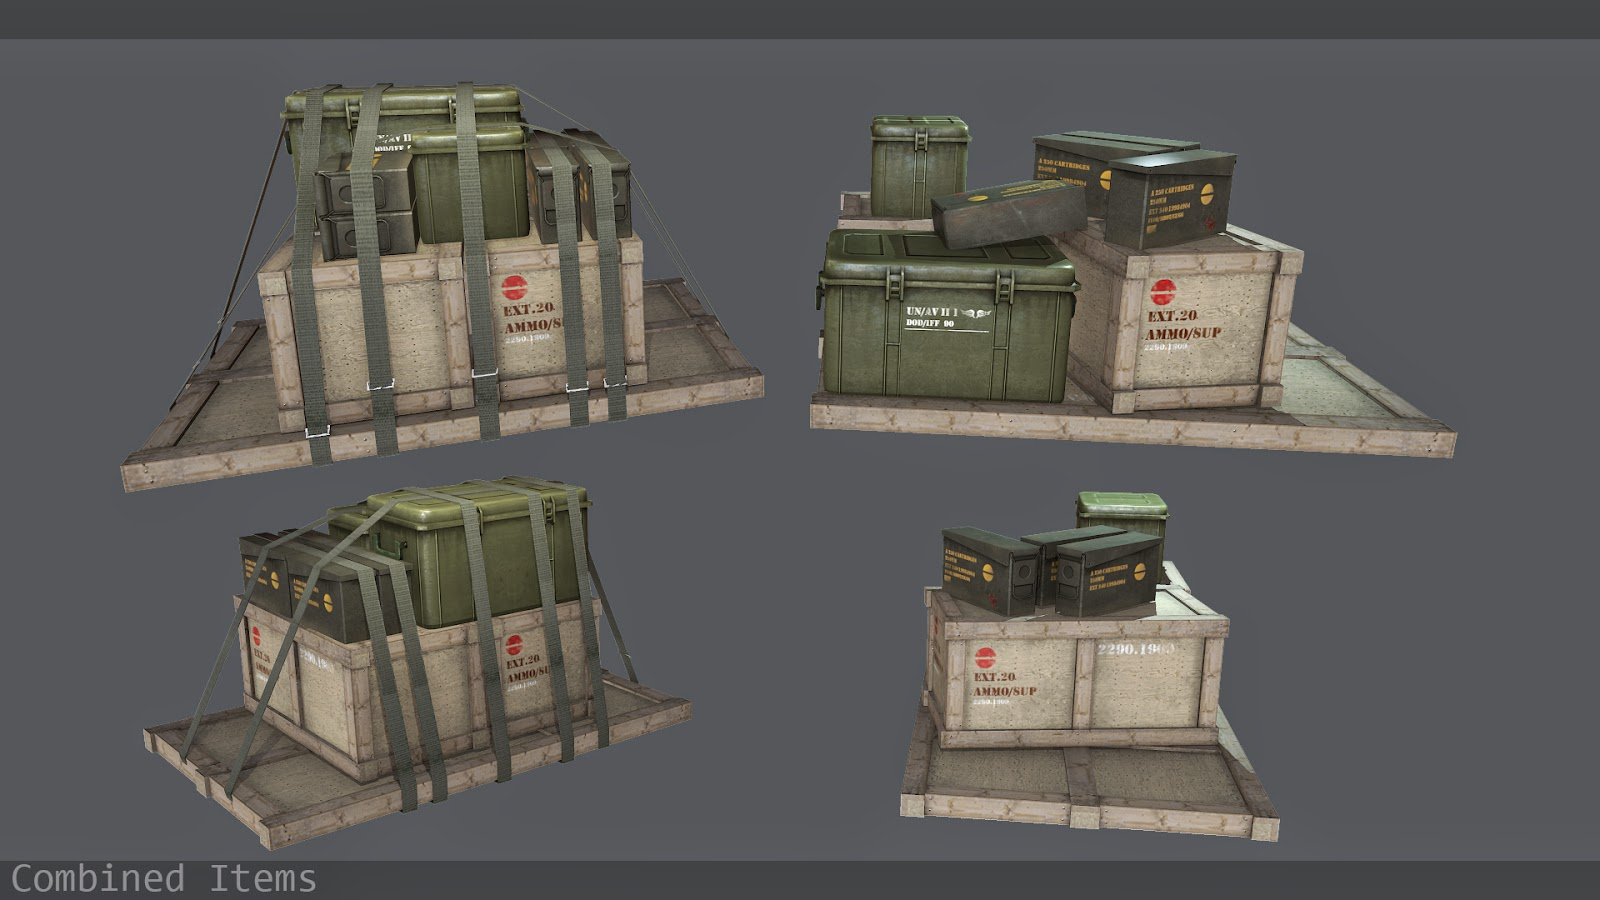 Pallets of Crates/Boxes